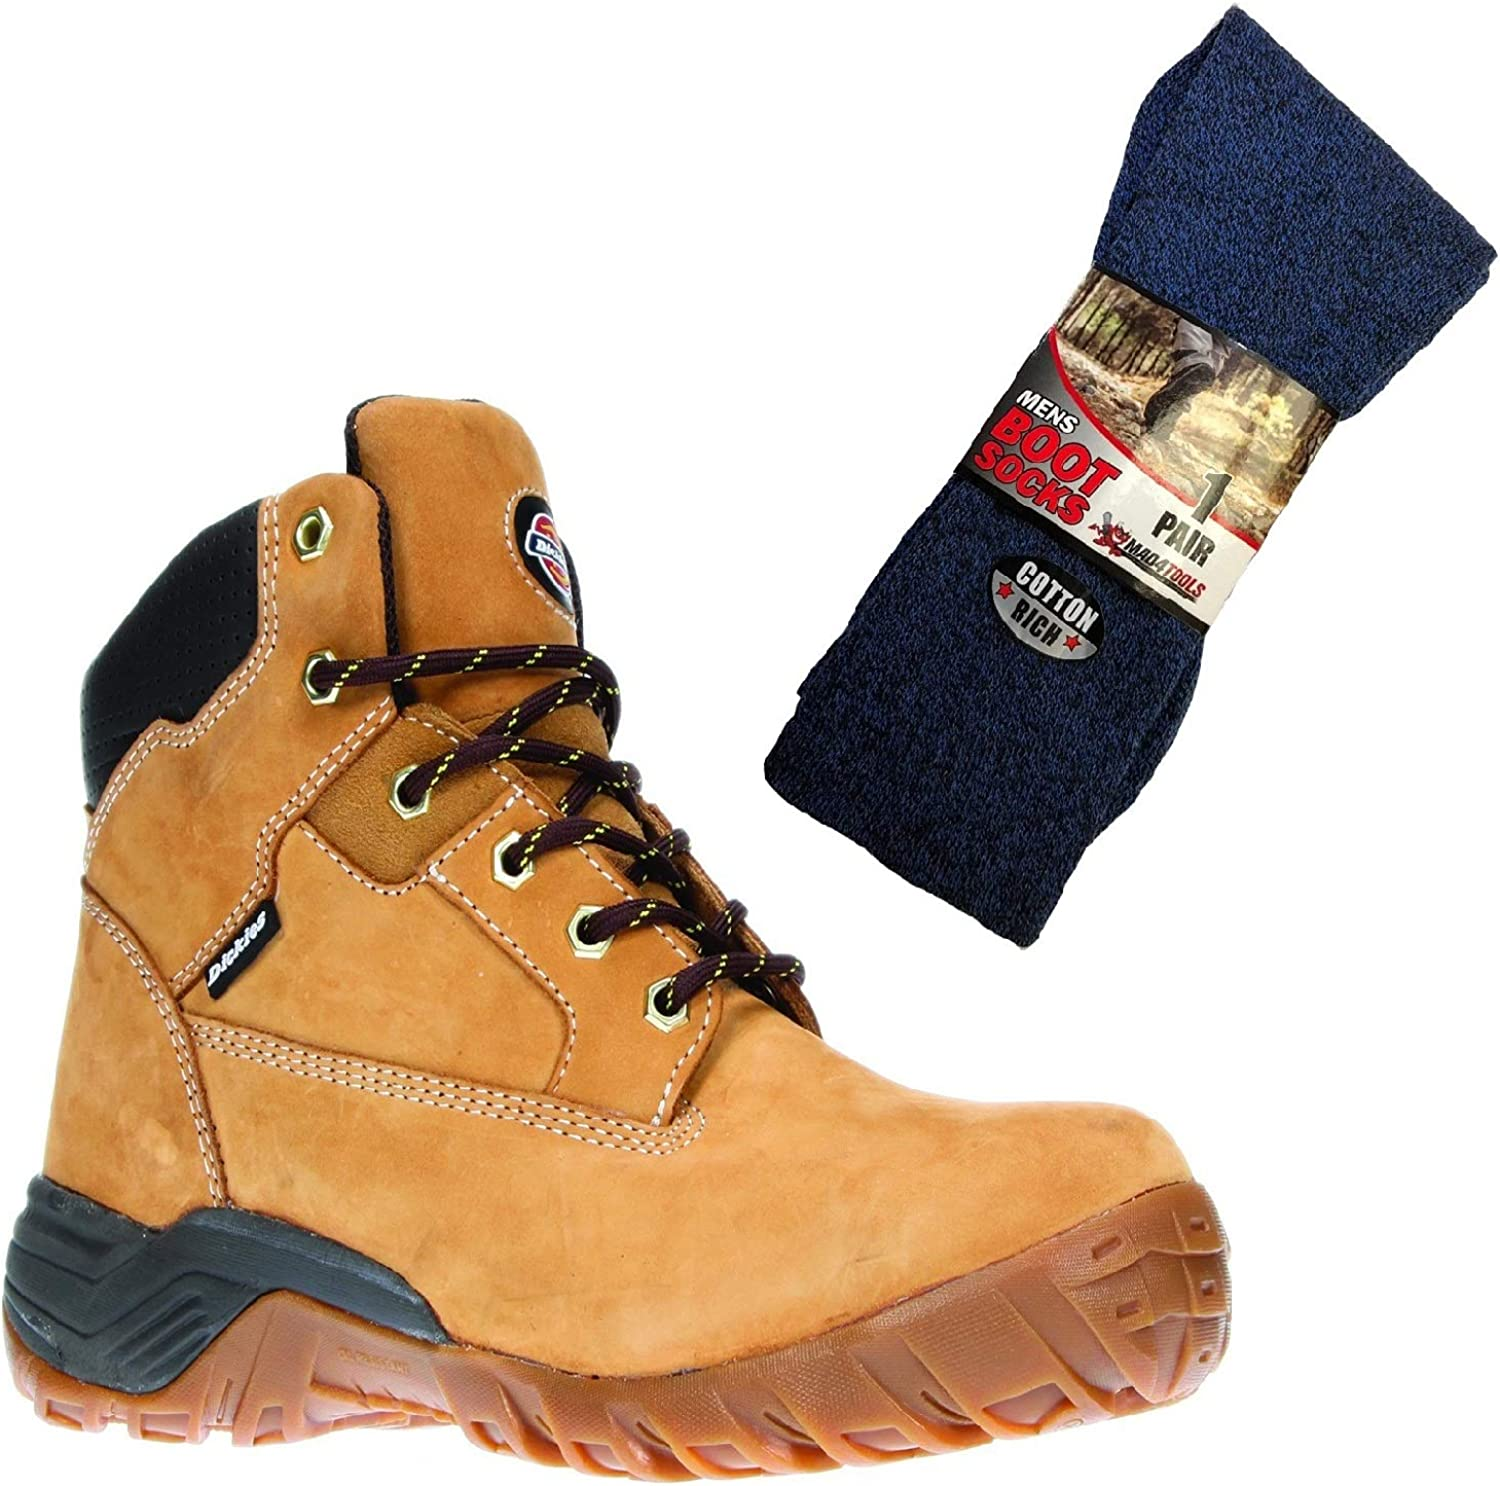 Dickies Graton Safety Work Boots and Boot Socks